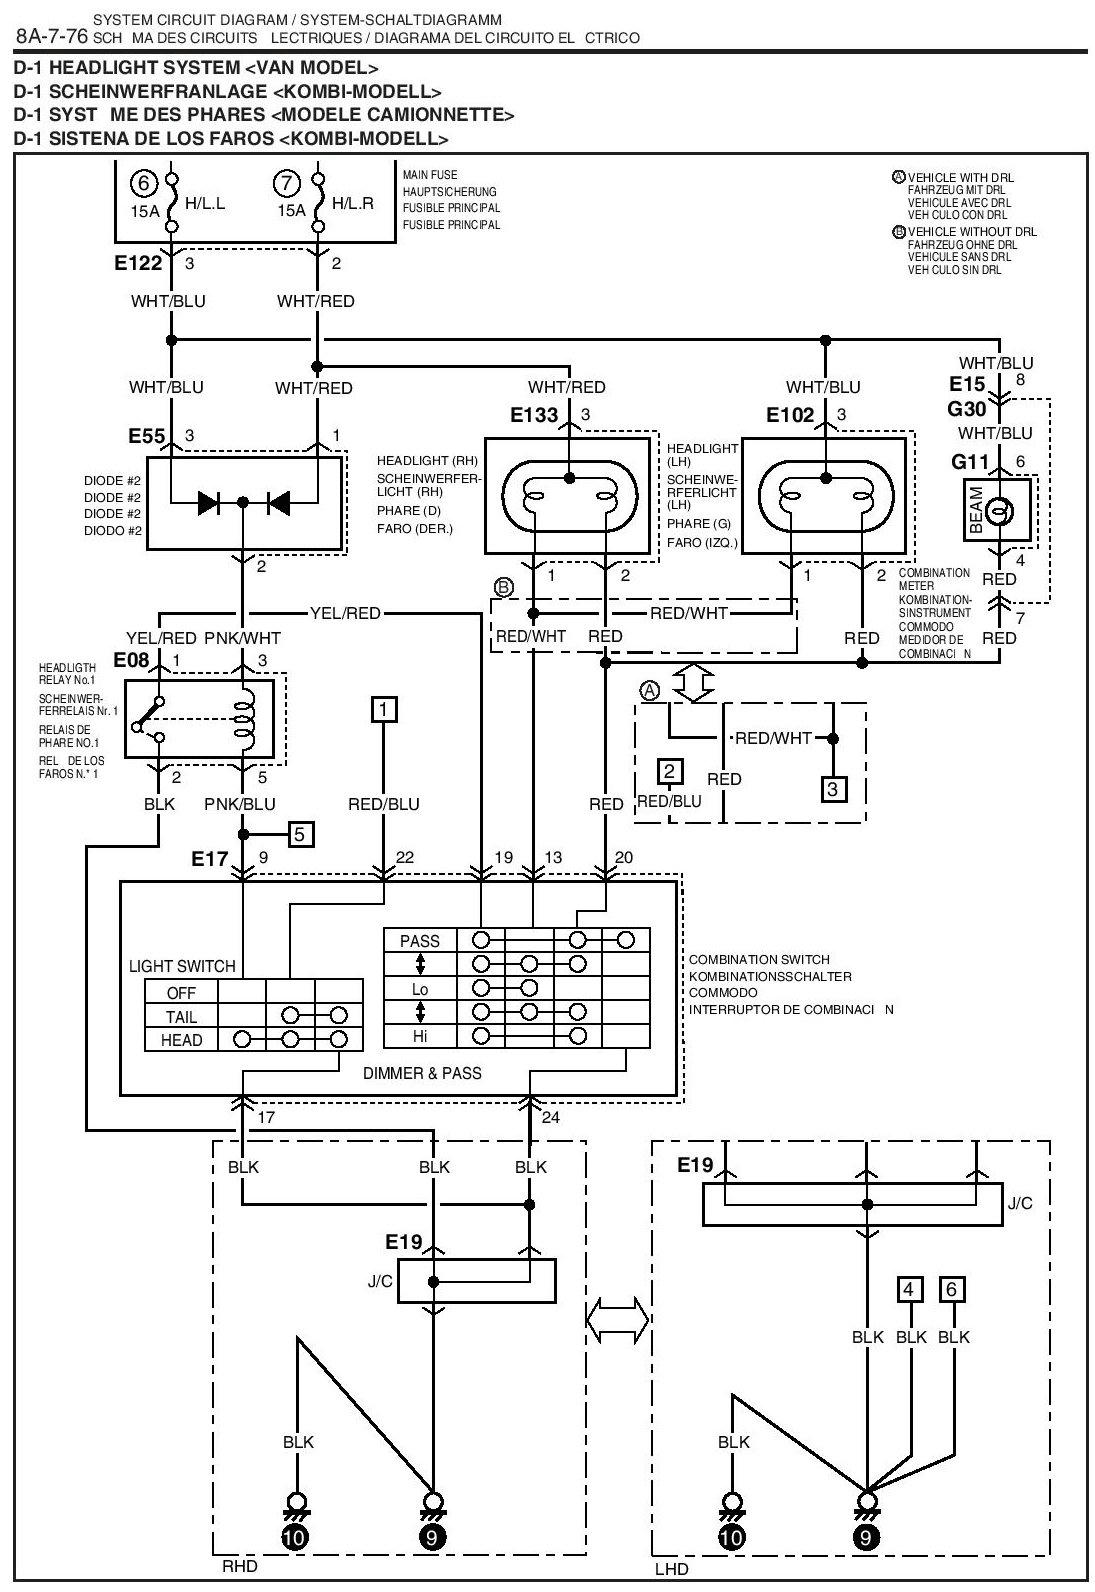 Suzuki Jimny Wiring Diagram Free For You Mitsubishi Central Locking Idimatic 28 Edgebander Diagrams Grand Vitara Manual